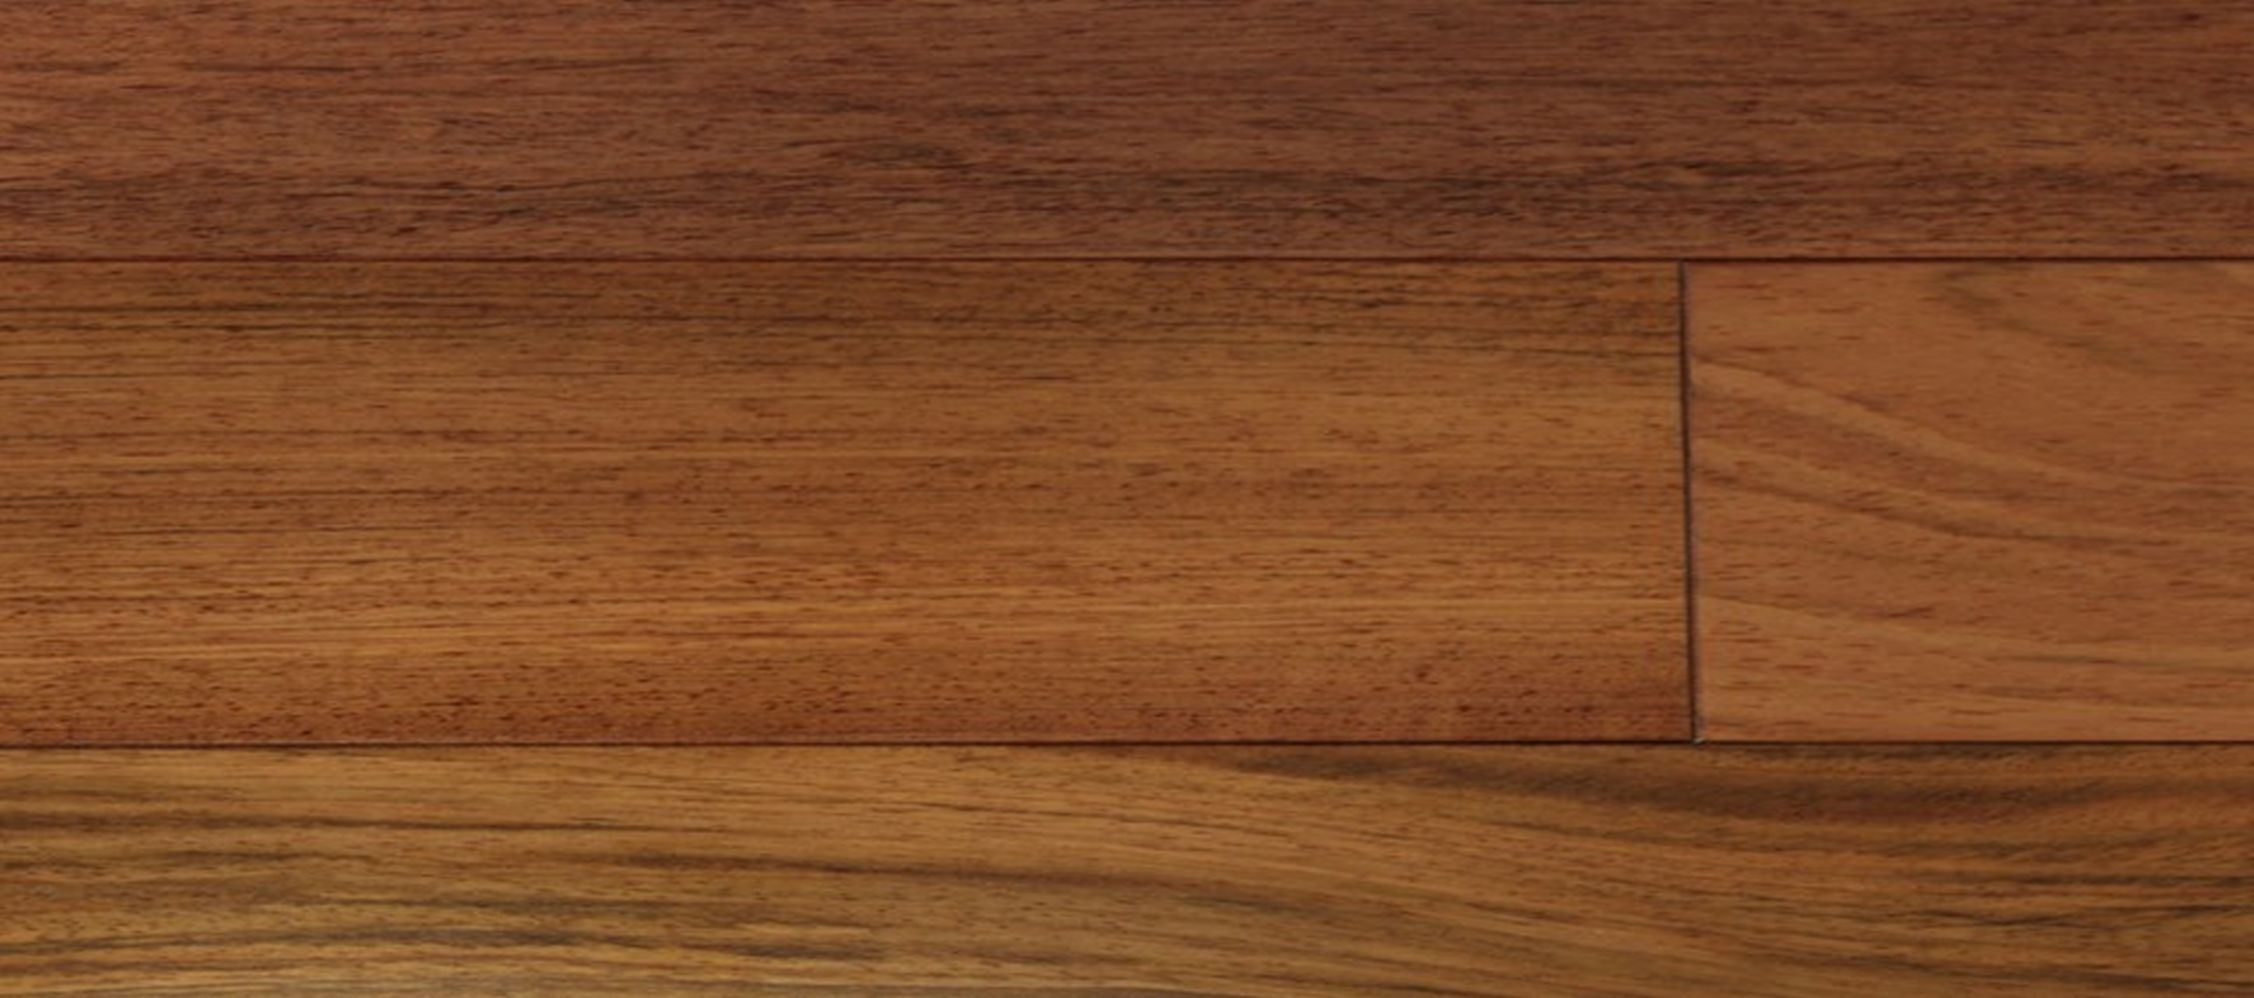 Scandian Wood Floors Brazilian Cherry